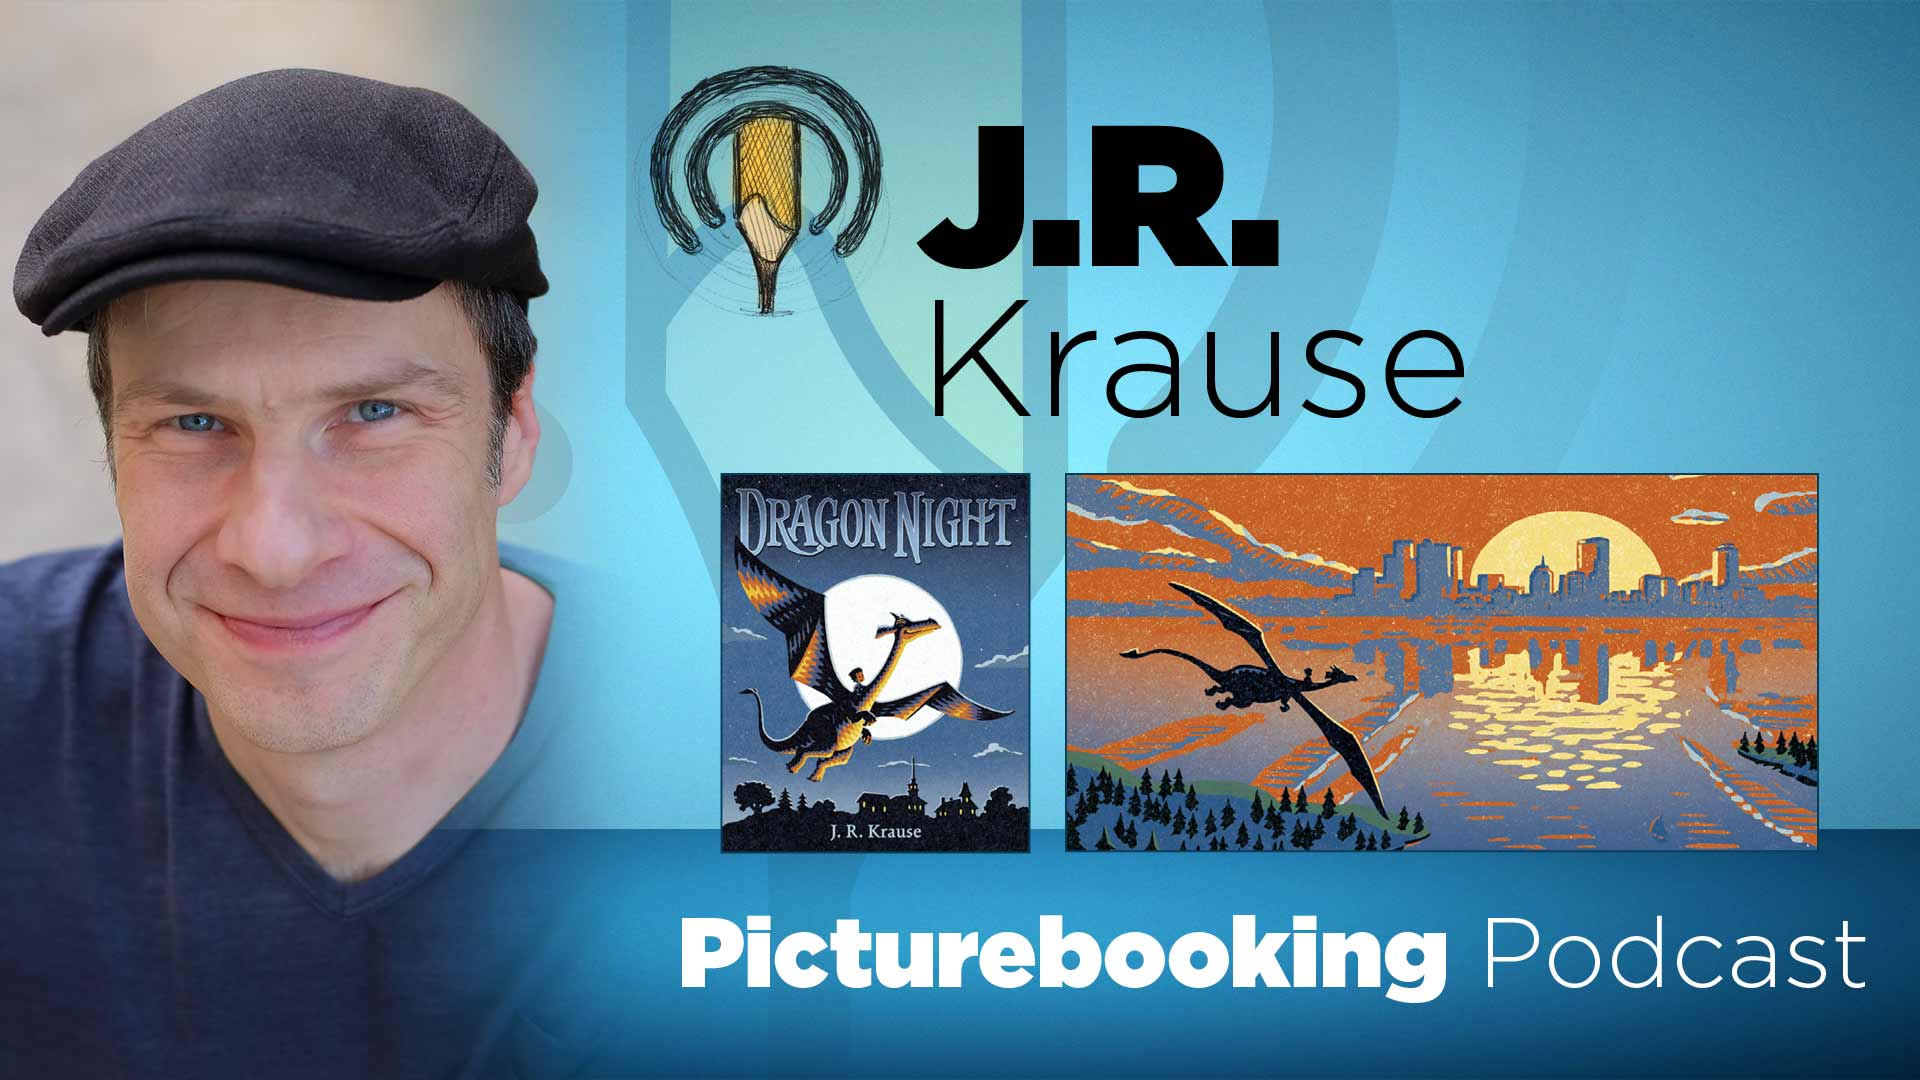 J.R. Krause – Dragon Night